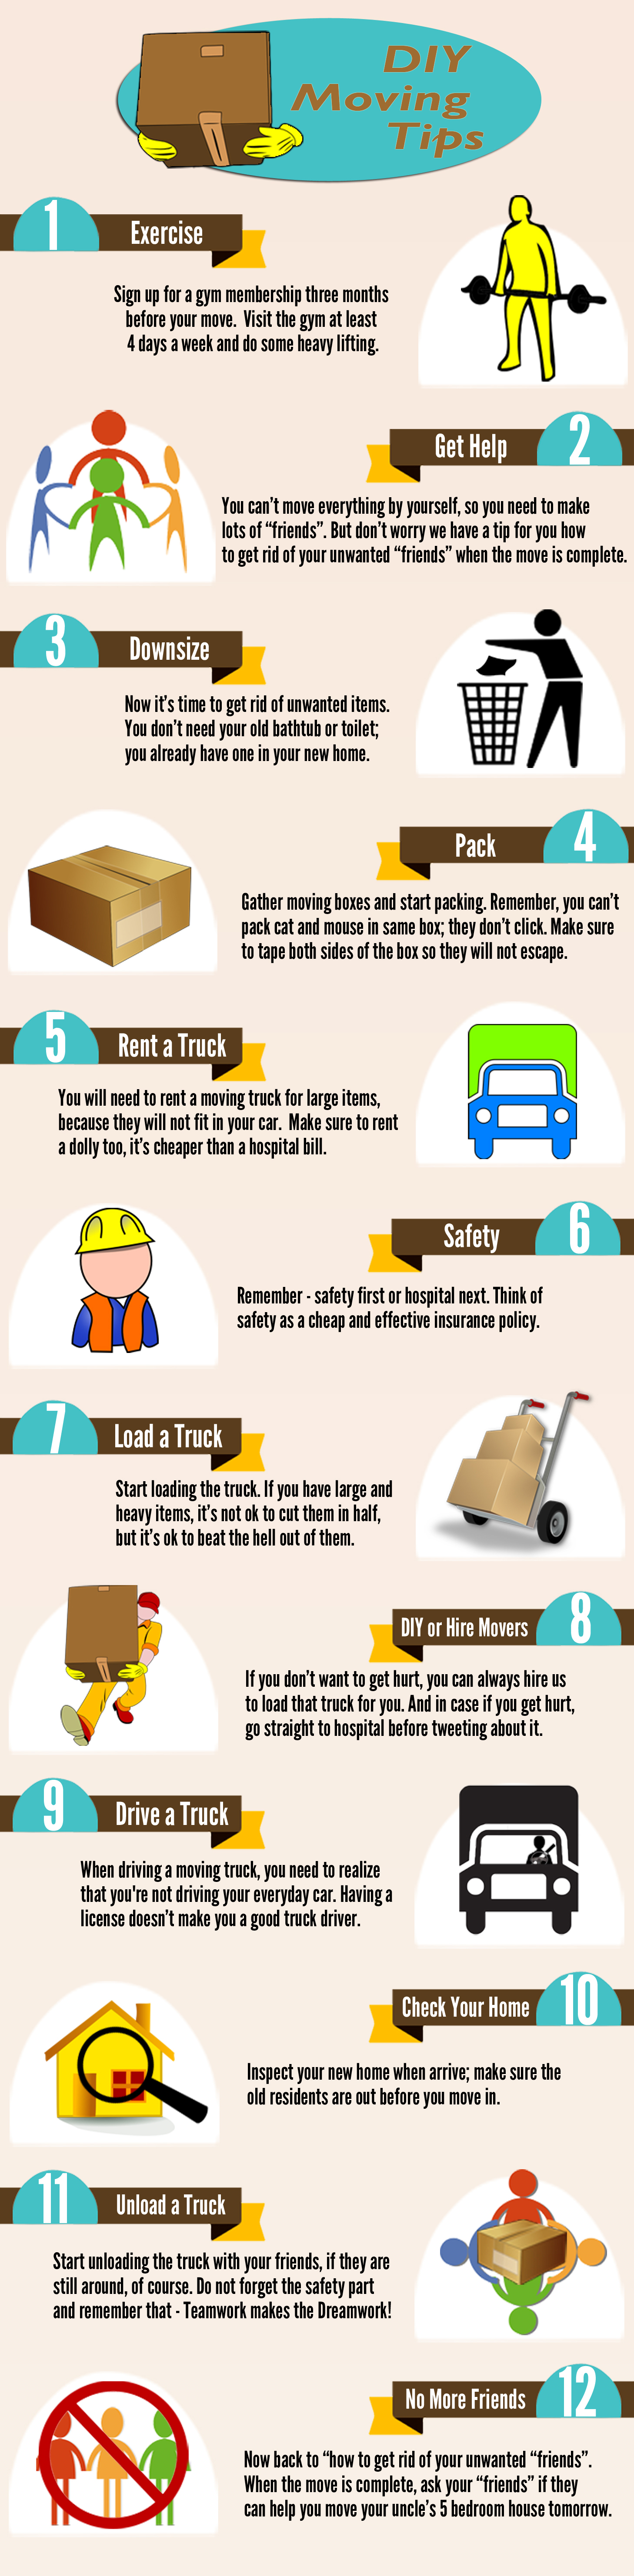 Funny Moving Tips Diy Style Moving Tips Diy Moving Moving House Quotes